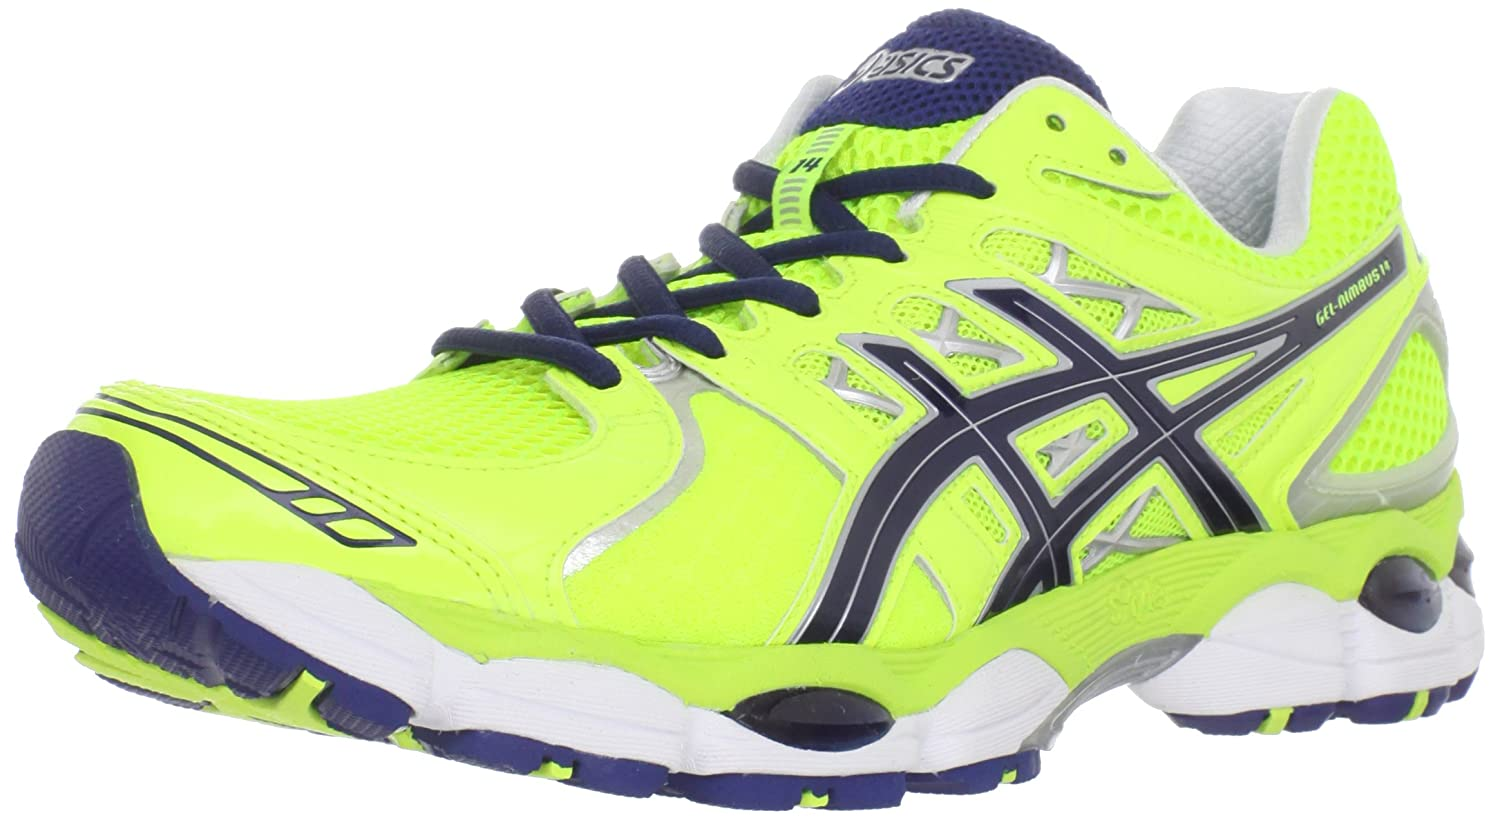 Amazon.com | ASICS Men's GEL-Nimbus 14 Running Shoe, Neon  Yellow/Navy/Lightning, 11 M US | Running